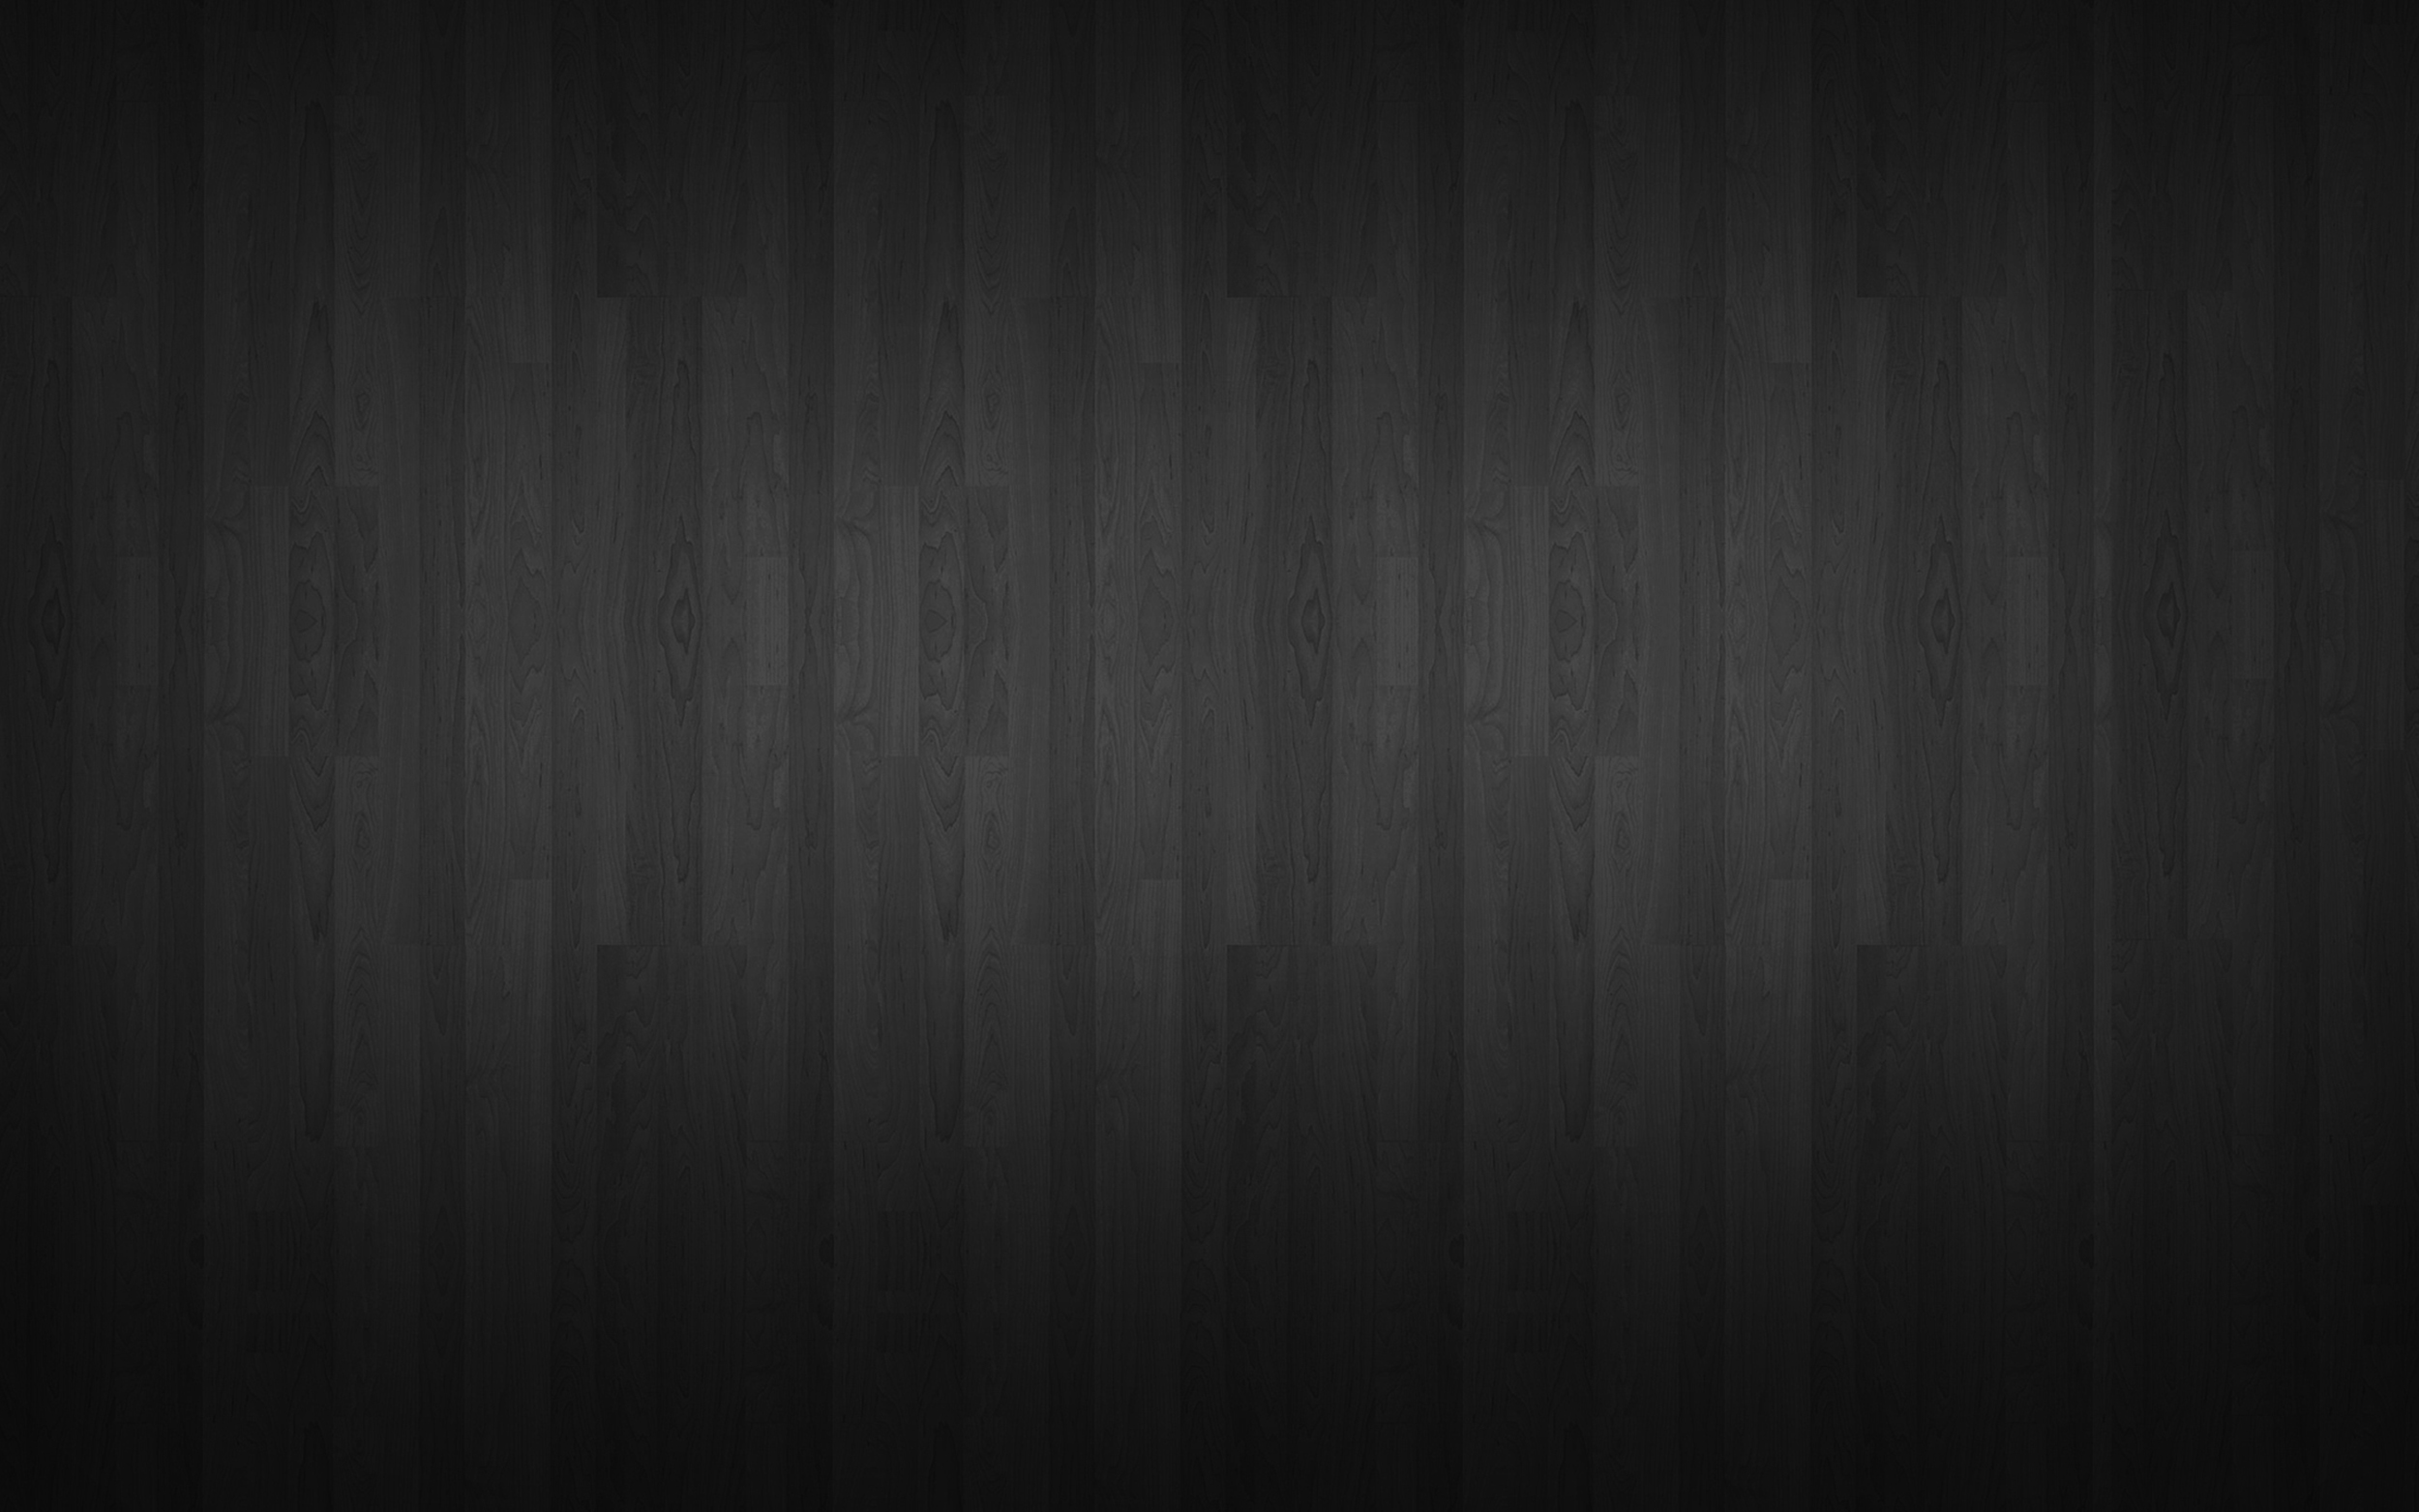 resume backgrounds